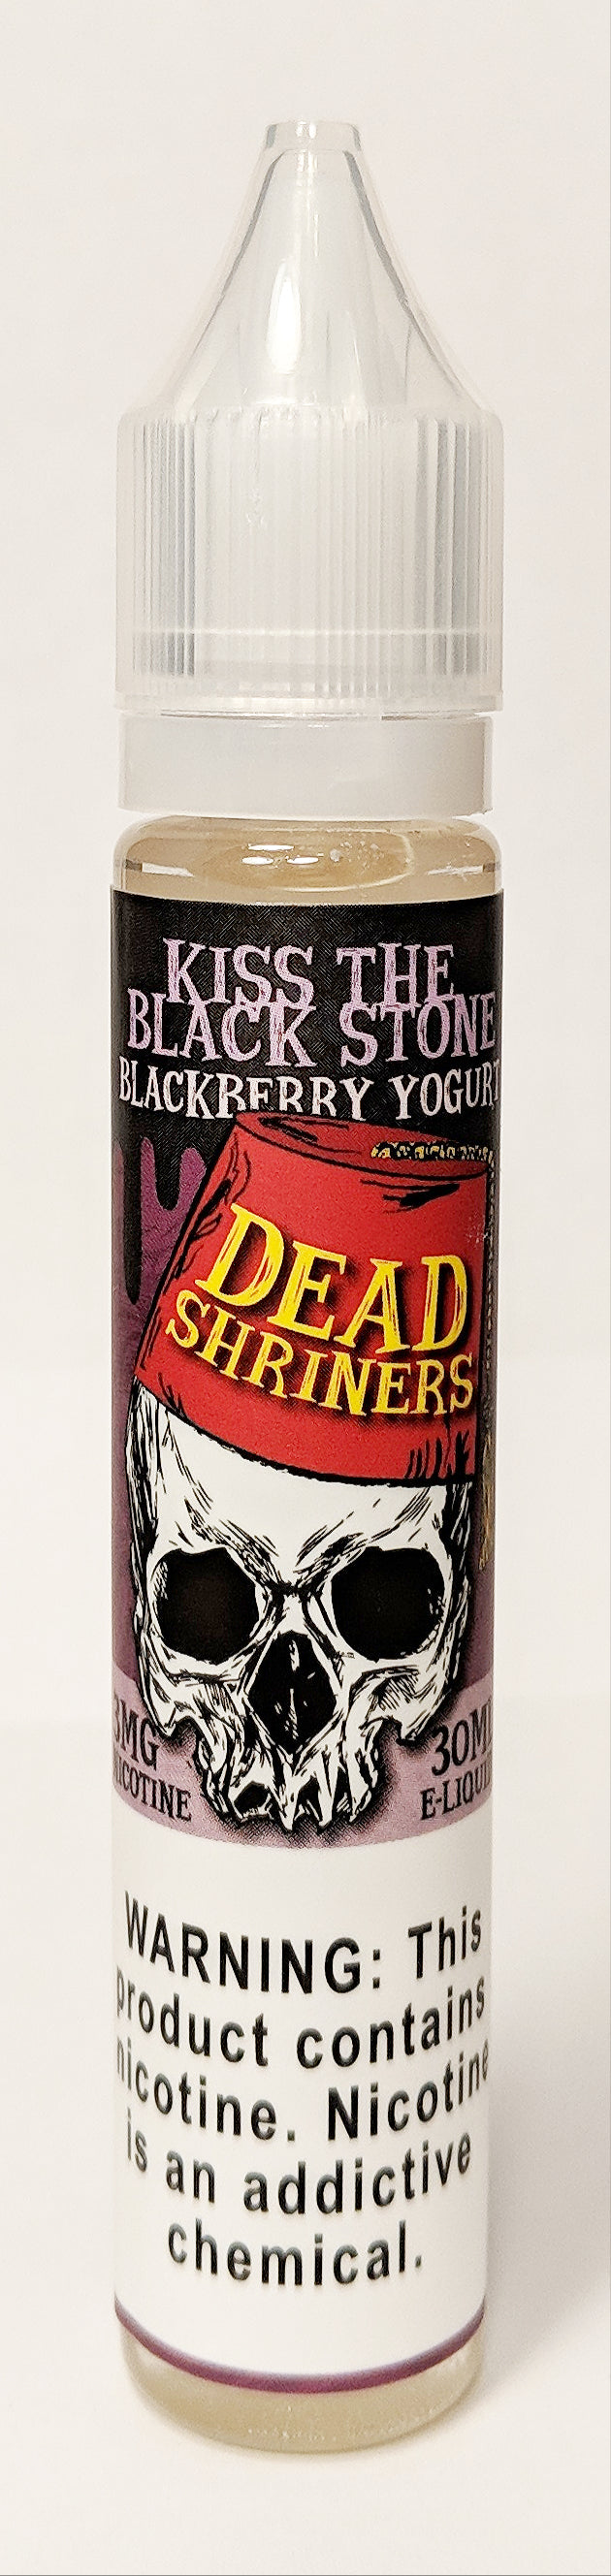 Dead Shriners - Kiss The Black Stone - 30ml